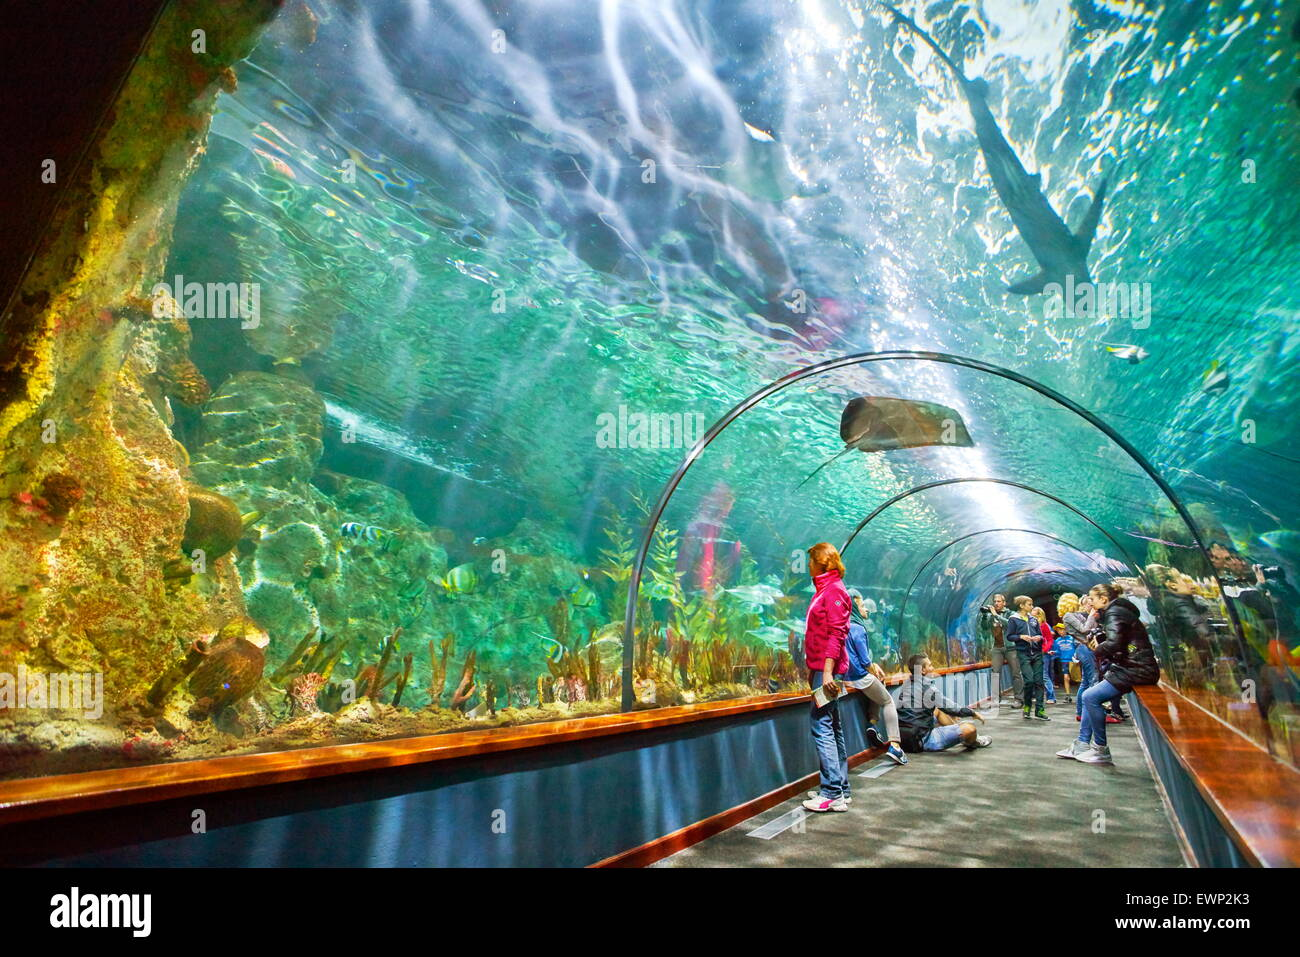 Aquarium in Loro Parque, Puerto de la Cruz, Tenerife, Canary Islands, Spain - Stock Image